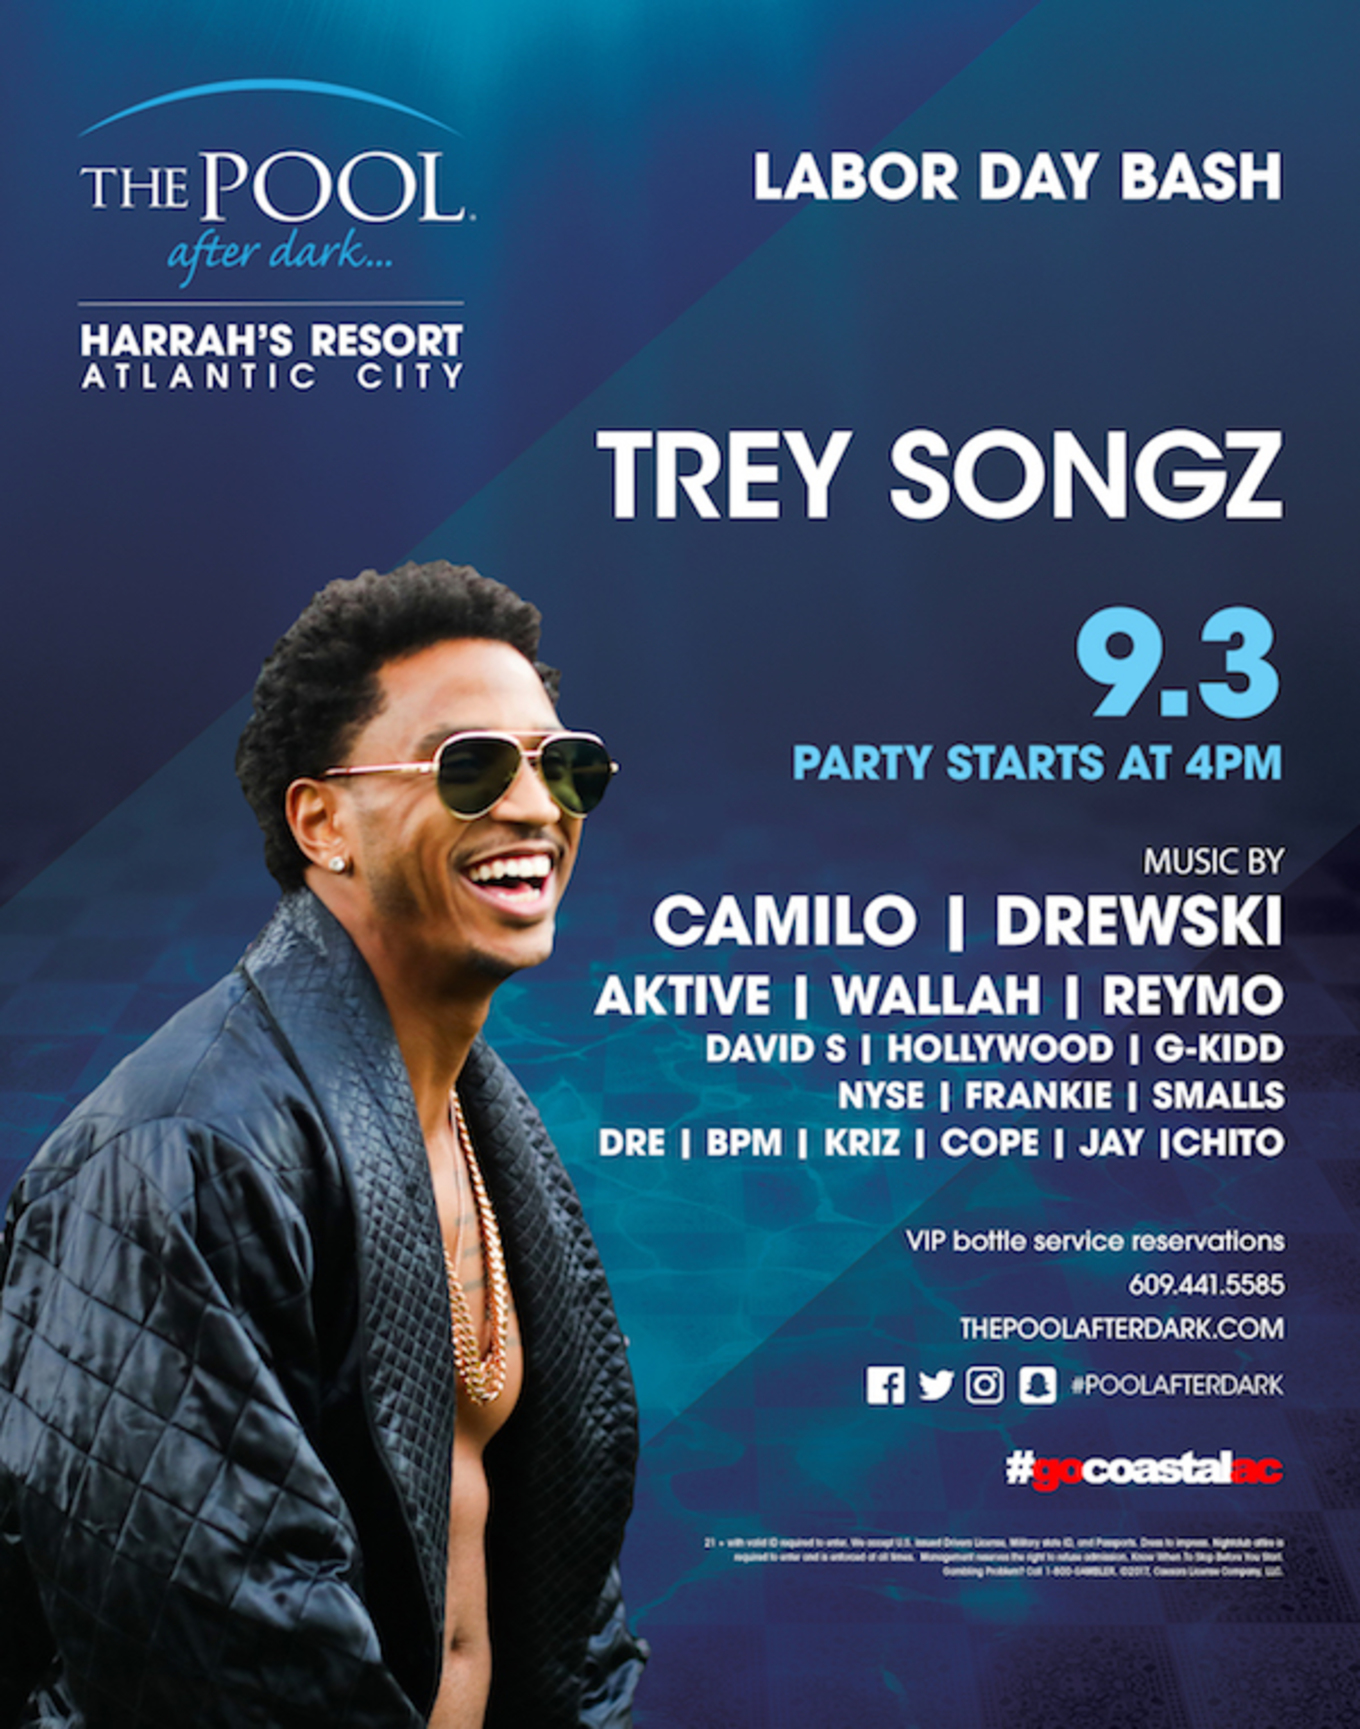 Labor Day Bash Hosted By Trey Songz Tickets The Pool After Dark